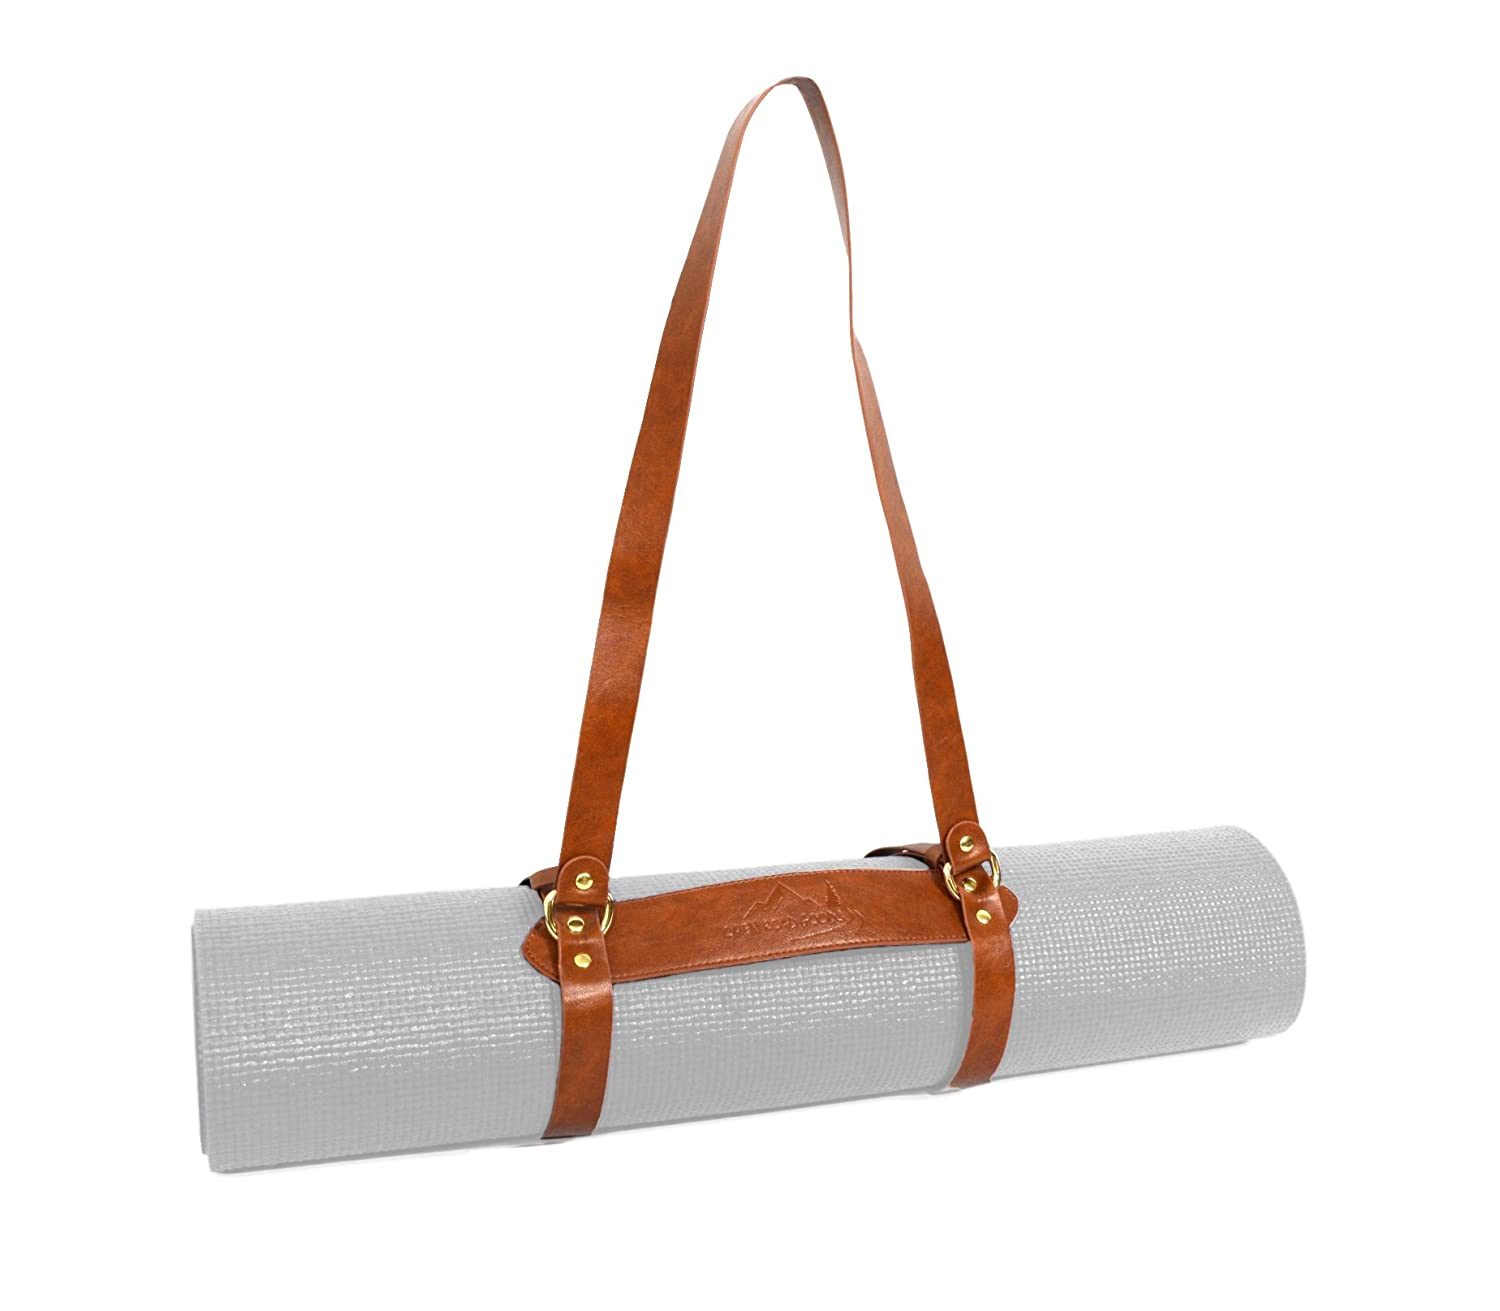 e41d48bcd6 Amazon.com   Open Road Goods Vegan Leather Yoga Mat Carrier  Sling Adjustable Blanket Strap   Sports   Outdoors